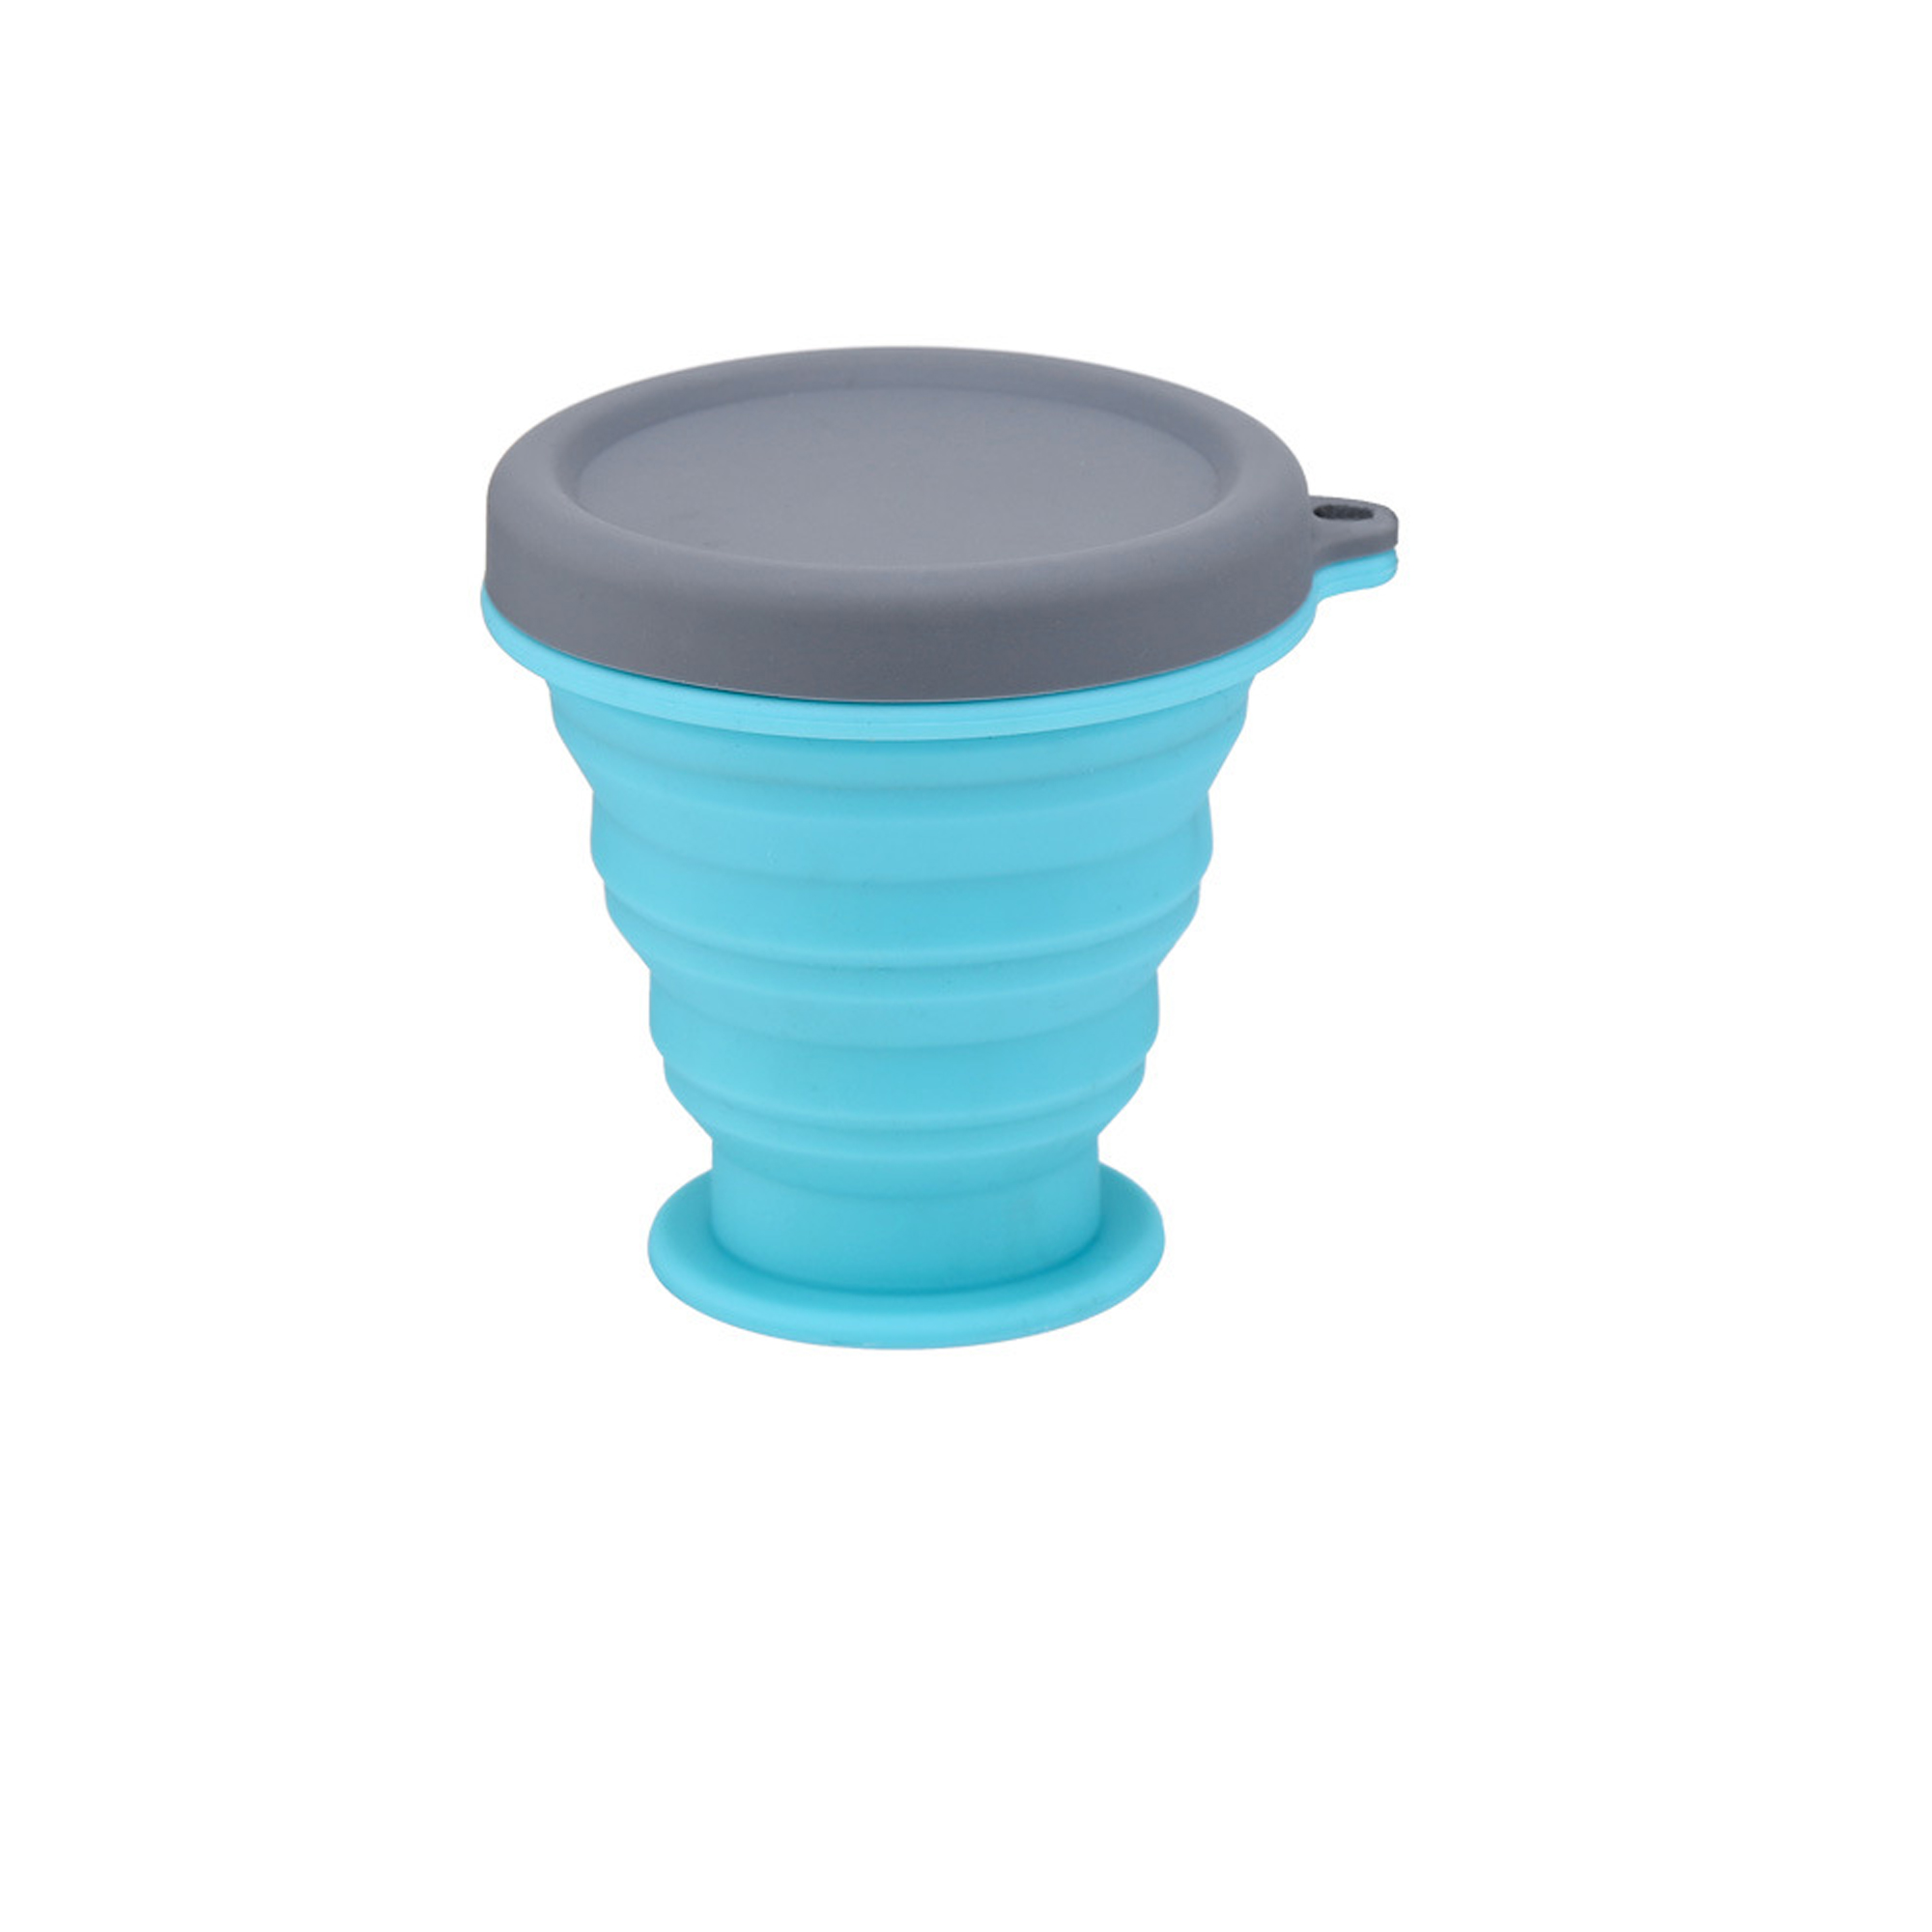 200ML Collapsible Silicone Cup Coffee Mug Reusable Travel Foldable Portable Cups